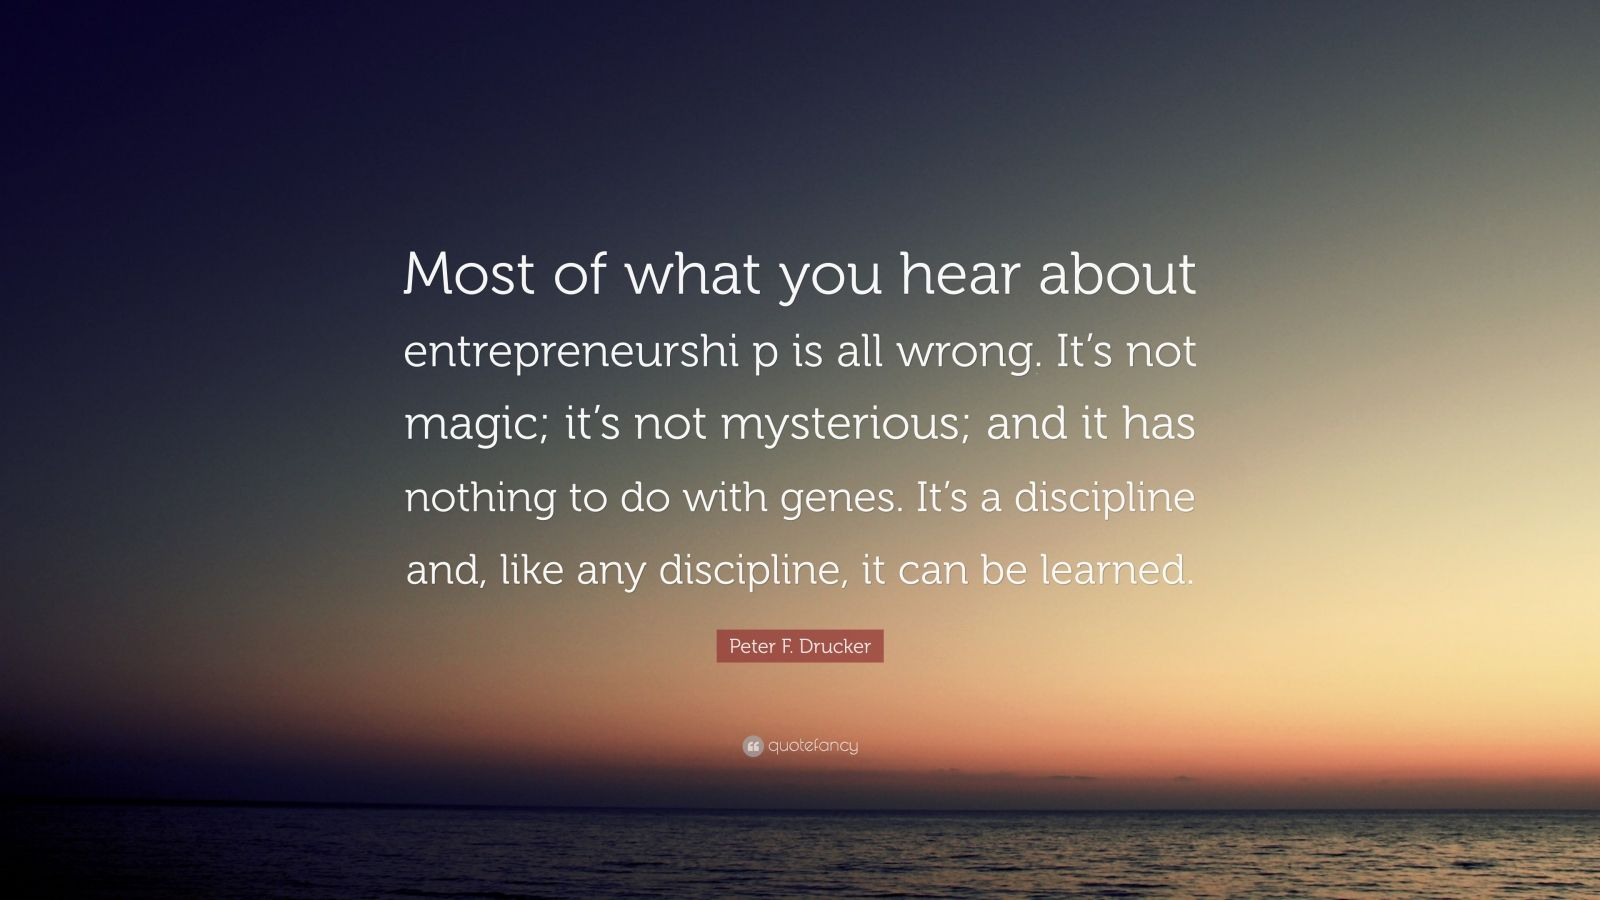 "Peter F. Drucker Quote: ""Most of what you hear about entrepreneurshi p is all wrong. It's not magic; it's not mysterious; and it has nothing to do with genes. It's a discipline and, like any discipline, it can be learned."""